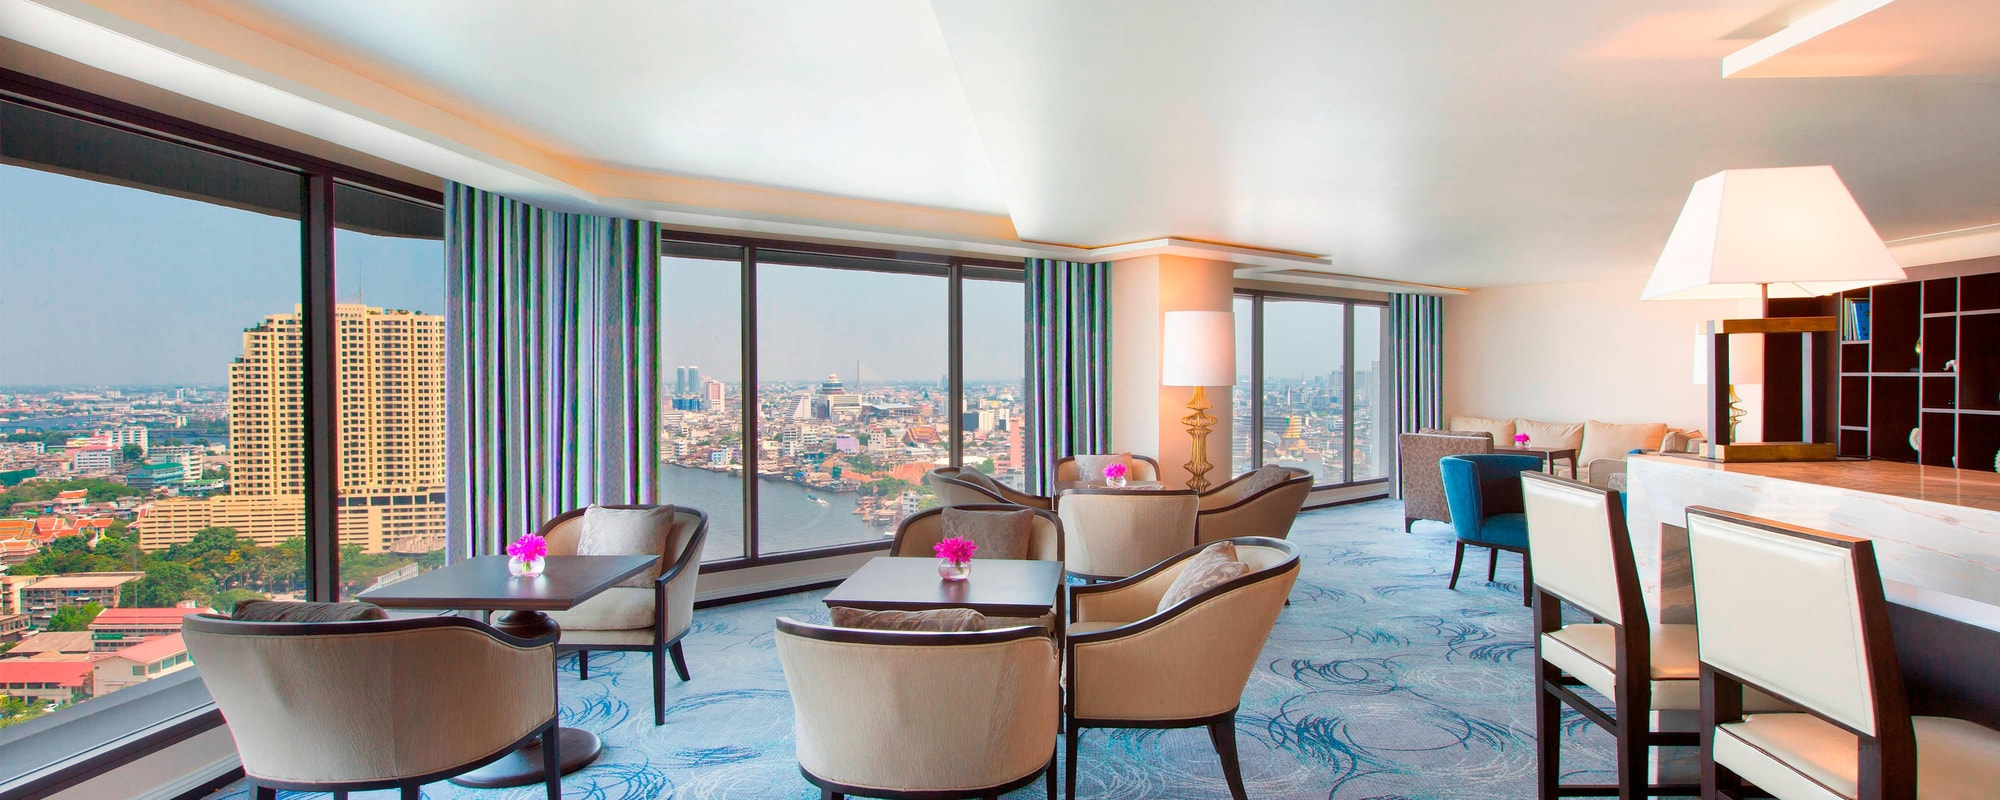 5-Star Hotel in Bangkok | Royal Orchid Sheraton Hotel & Towers